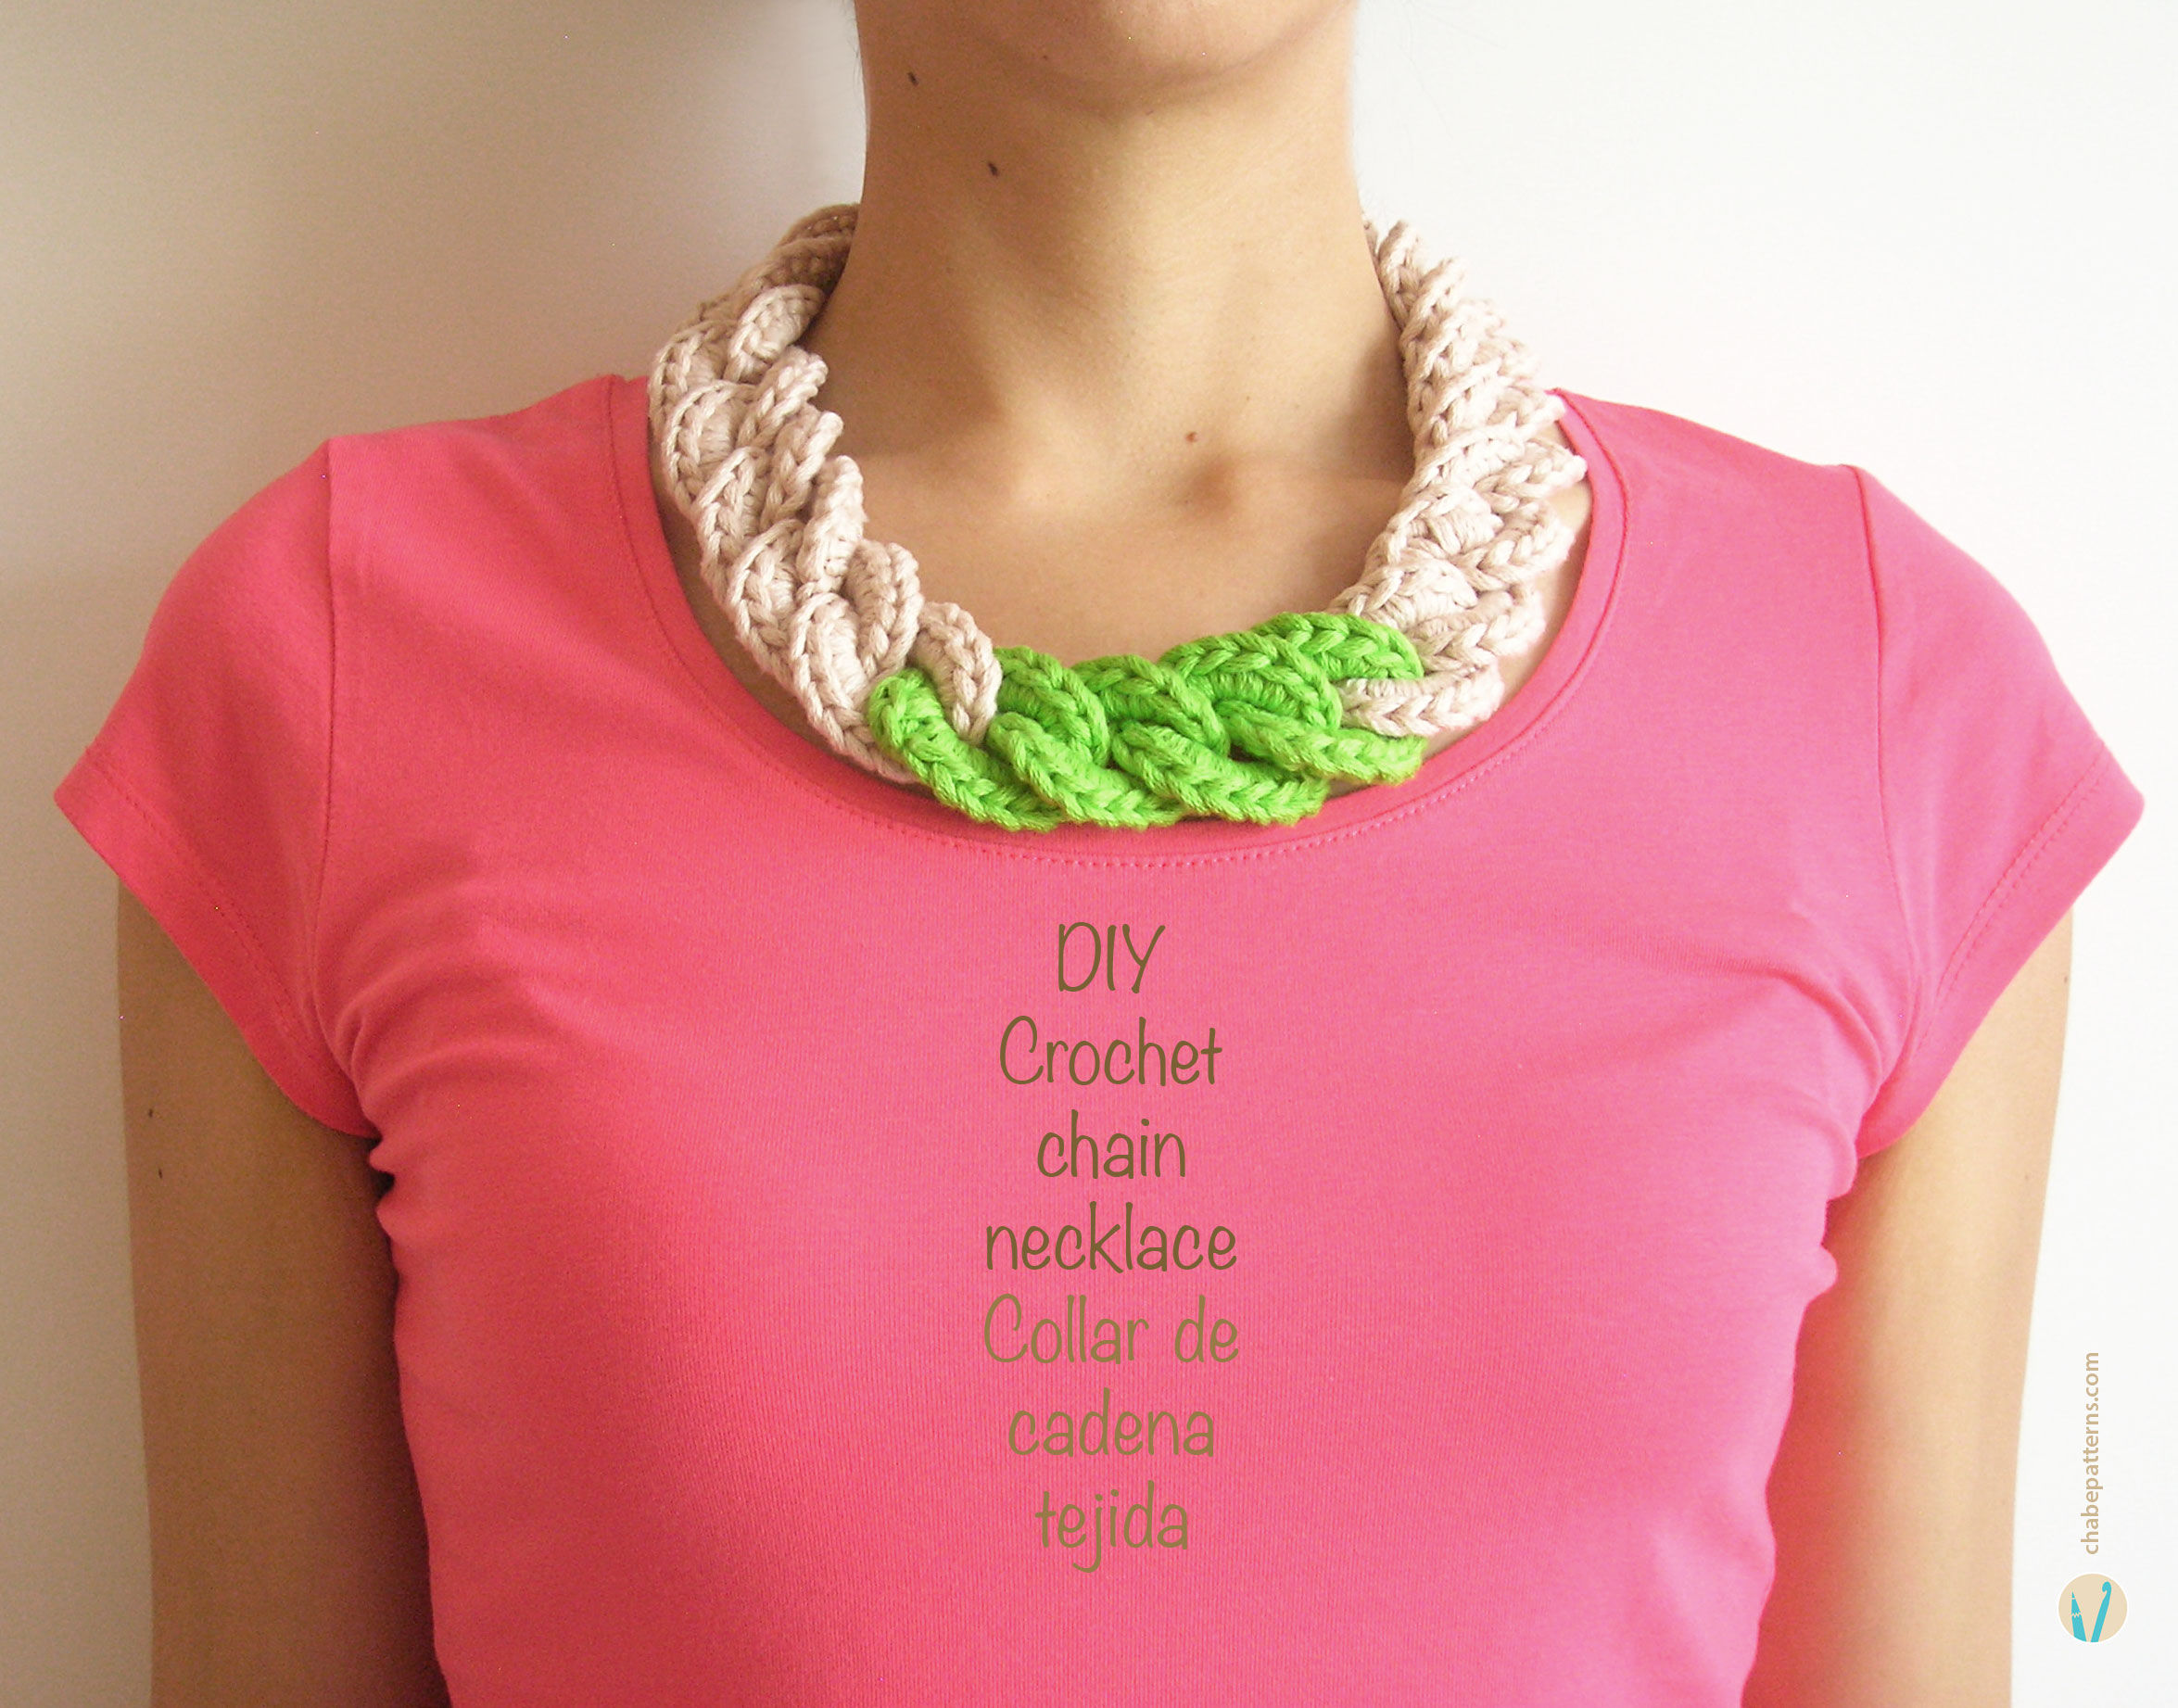 crochet chain necklace collar de cadena tejida